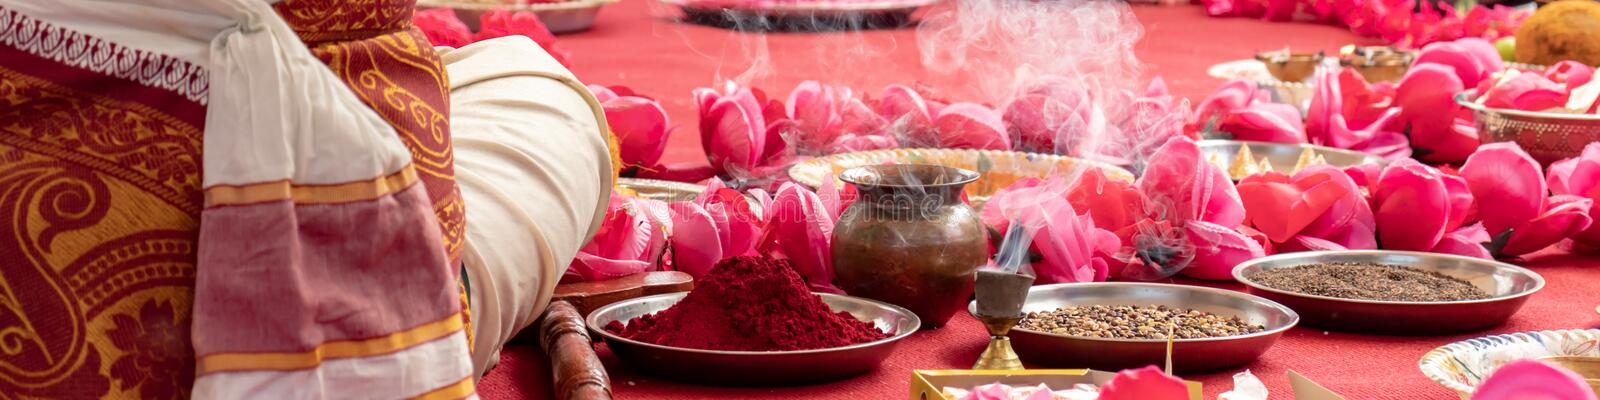 Indian wedding ceremony, decorations for traditional ethnic rituals for marriage royalty free stock images